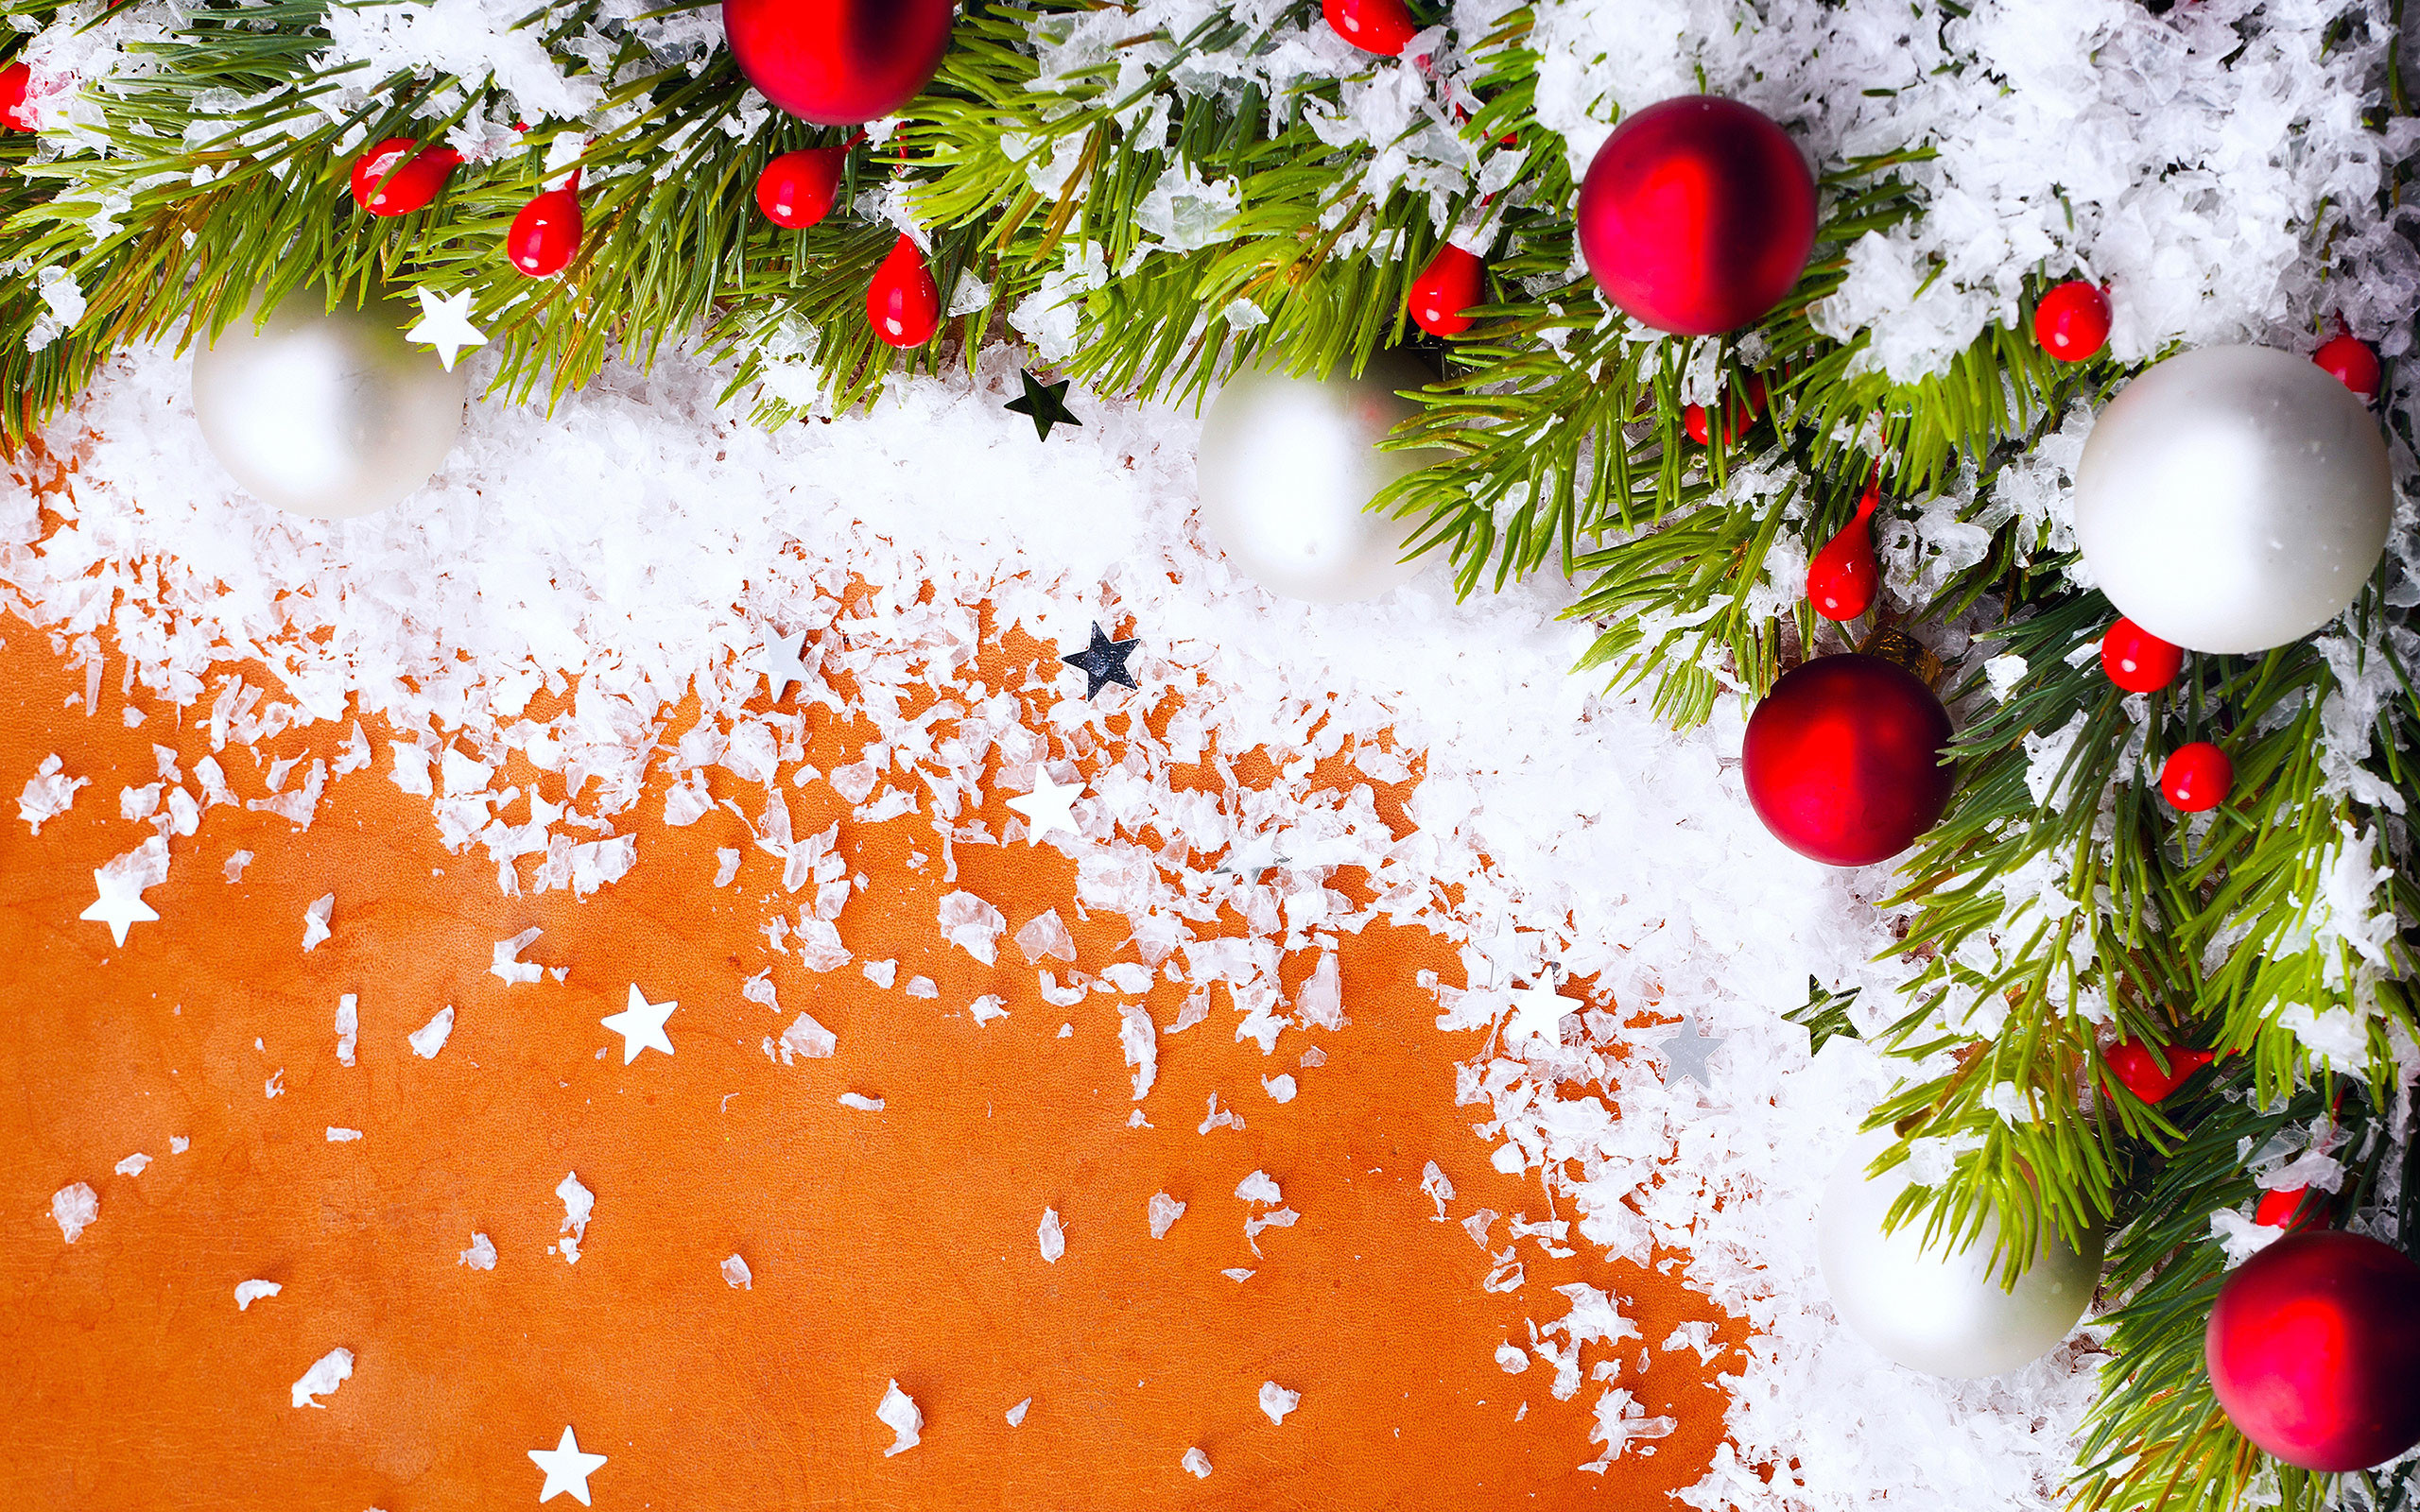 2560x1600 ... 2015 hd Christmas backgrounds - wallpapers, images, photos, ...